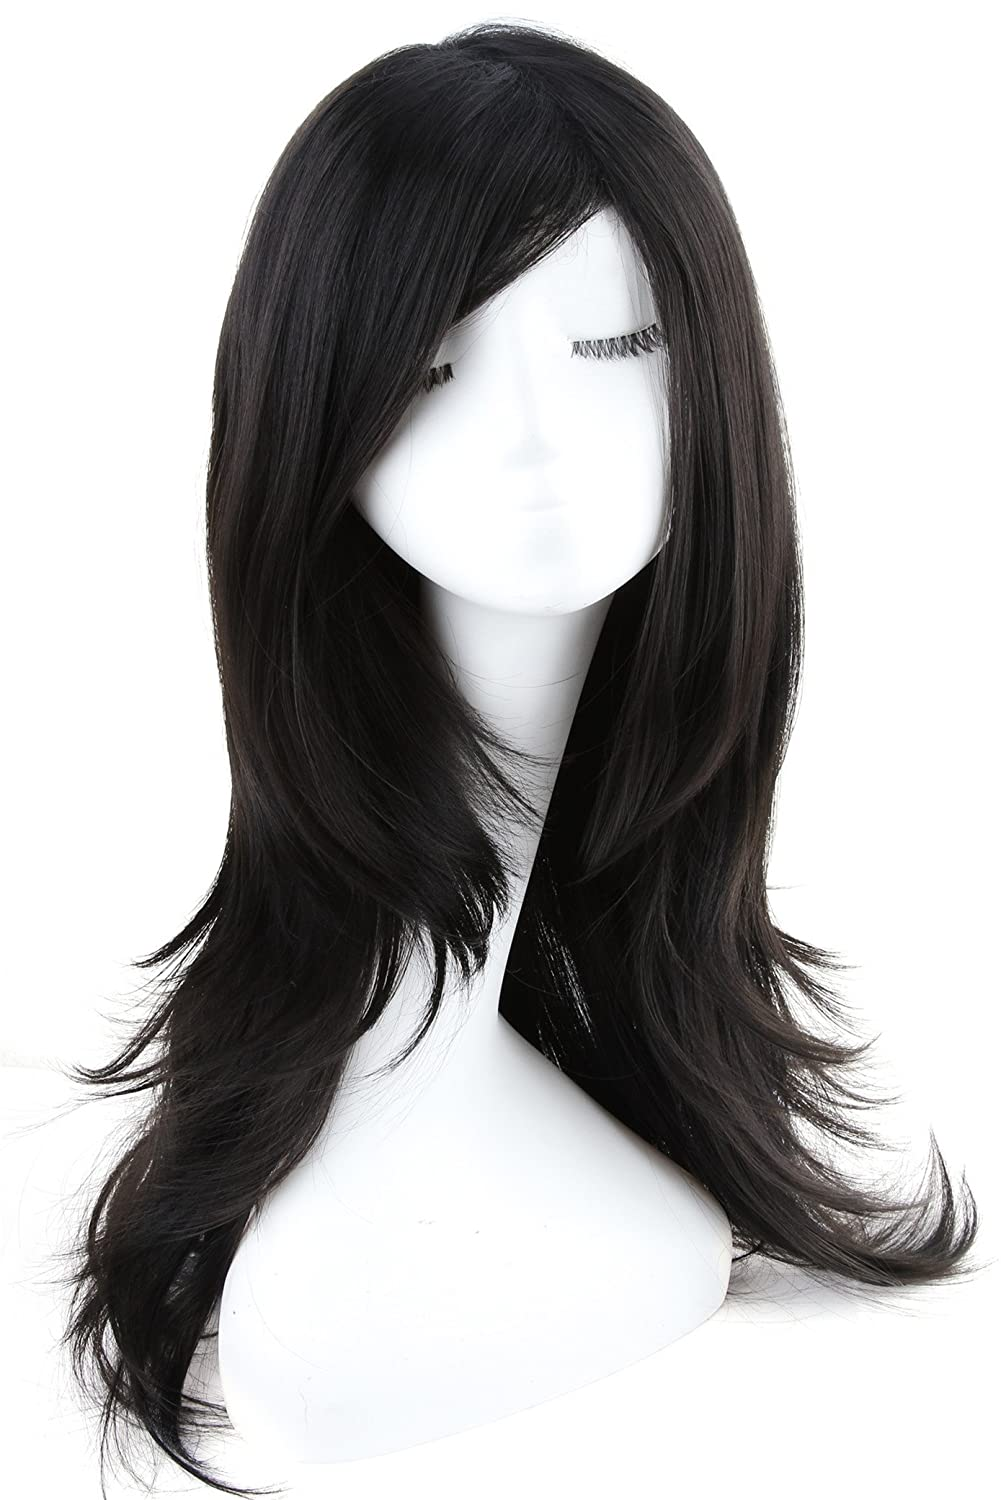 ATOZWIG Long Black Cosplay Wigs Straight With Side Bang Anime Wigs Synthetic Hair For Sweet Girls